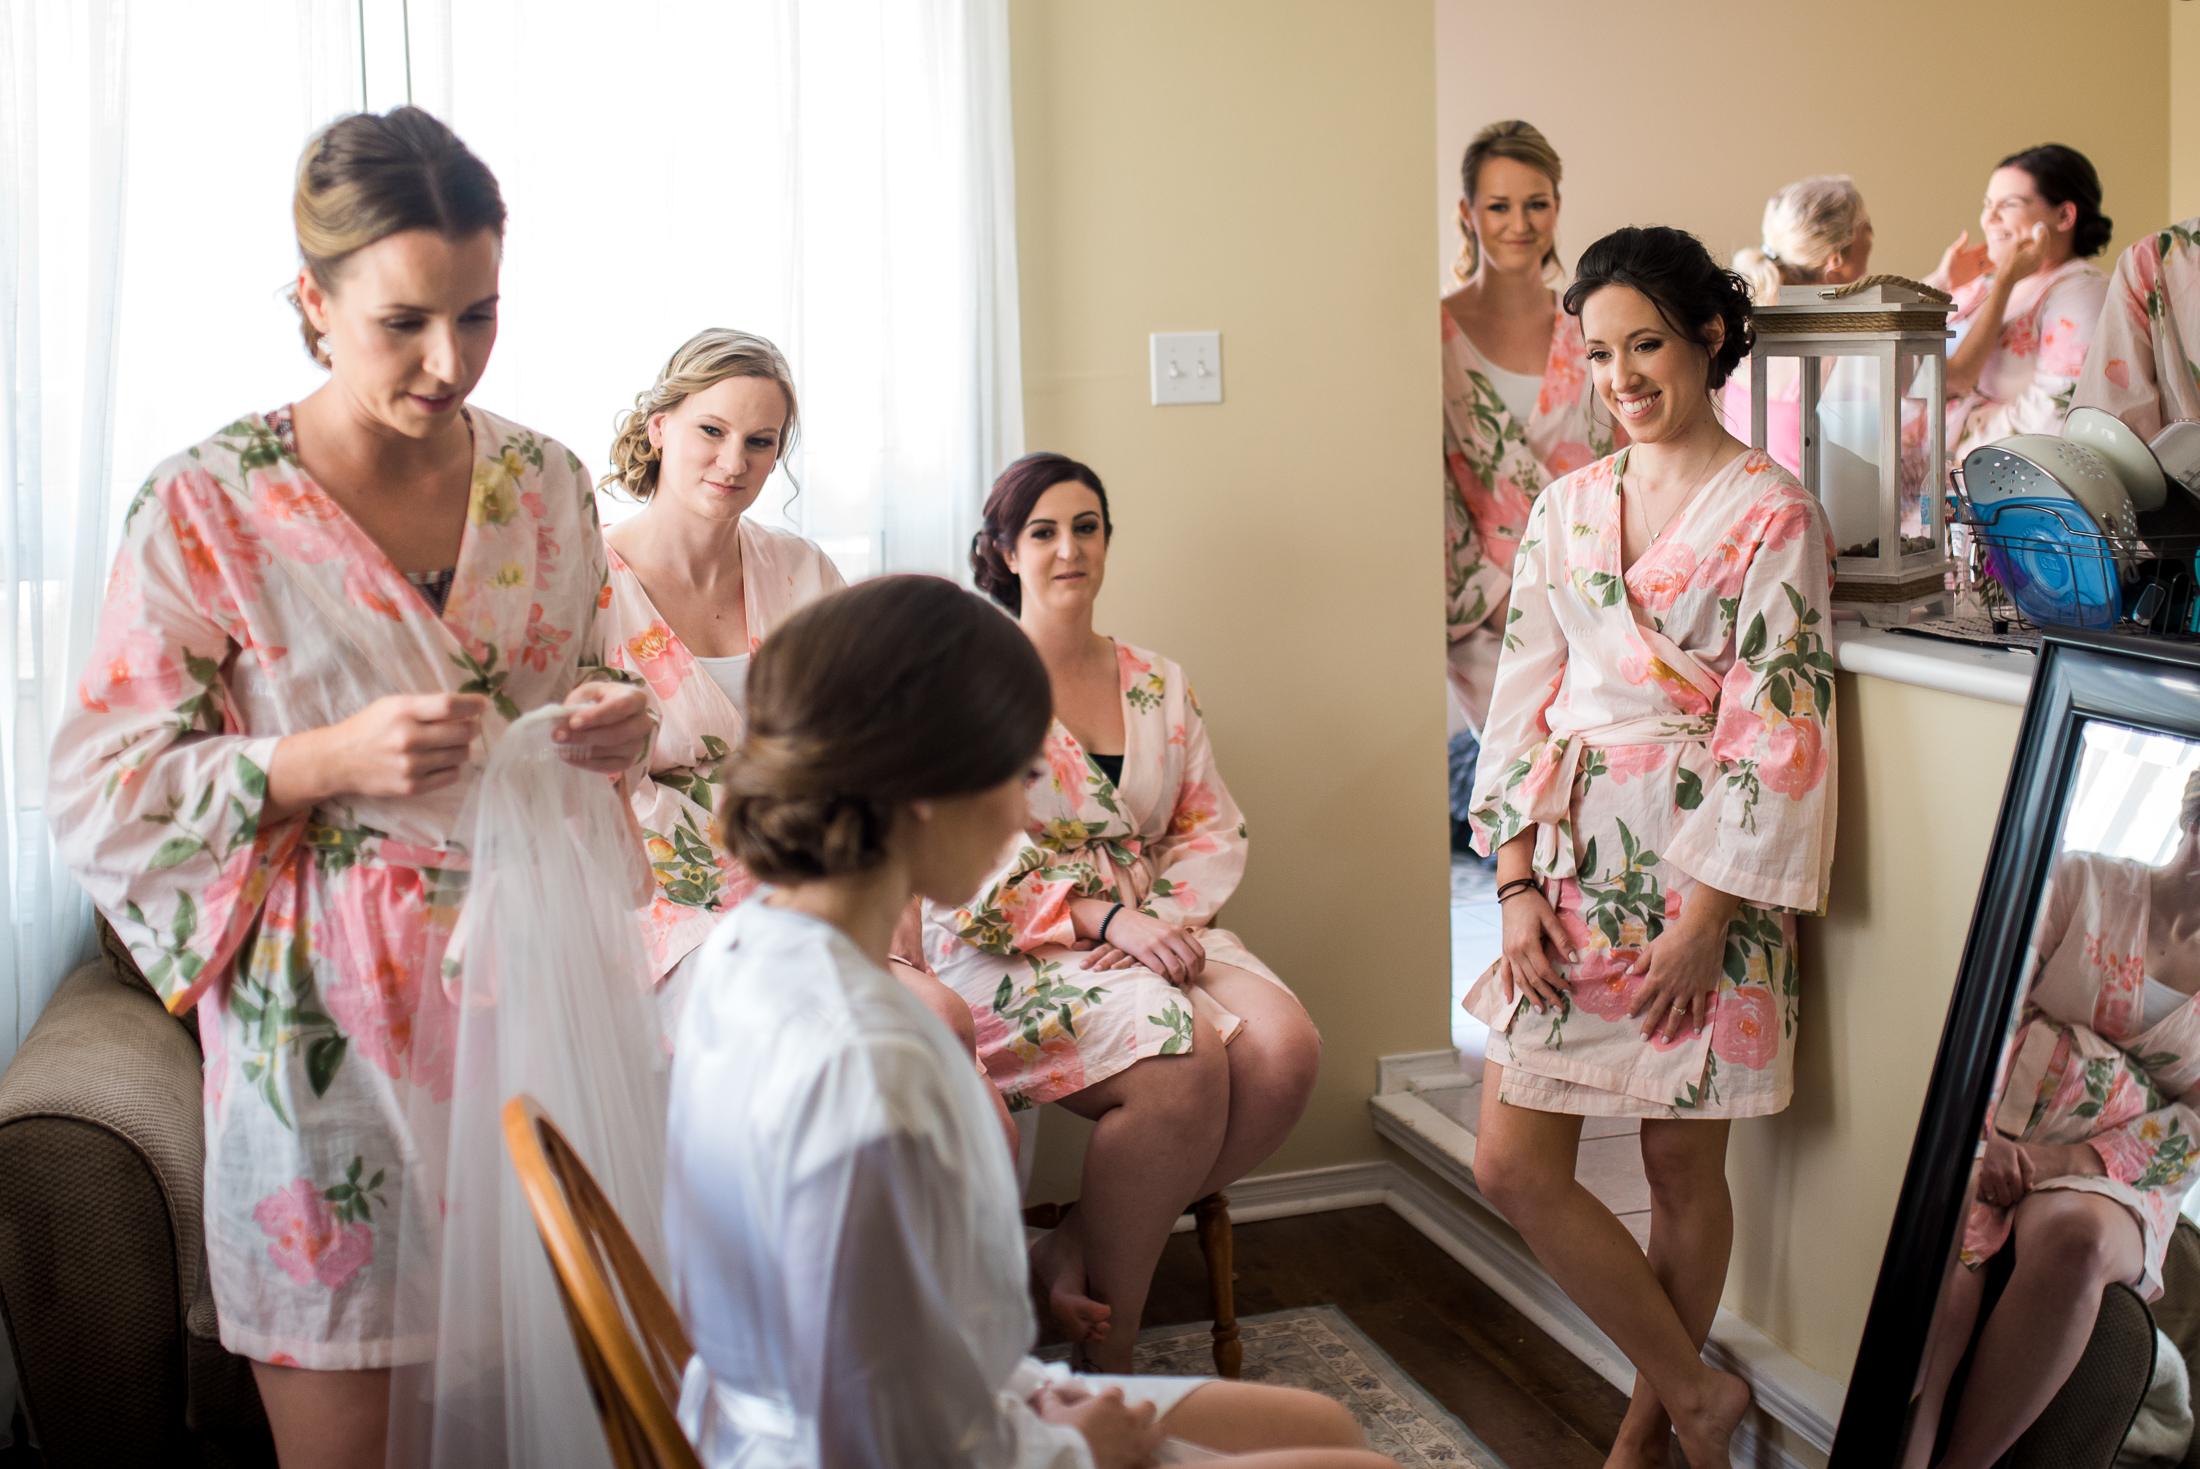 durham region wedding photographer pickering